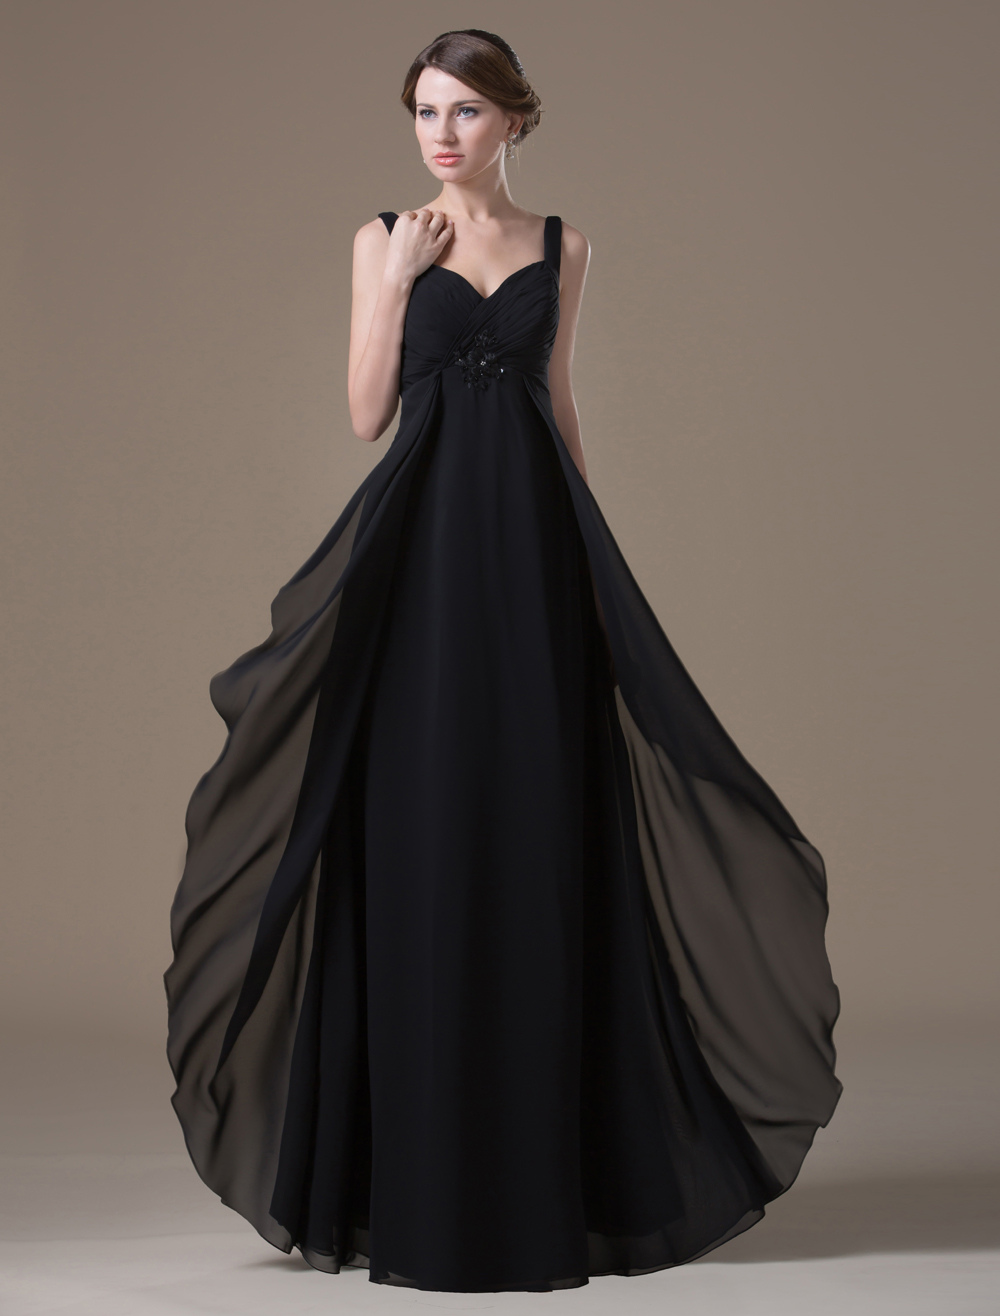 Sexy Black Spandex Chiffon A-line Maternity Bridesmaid Dress